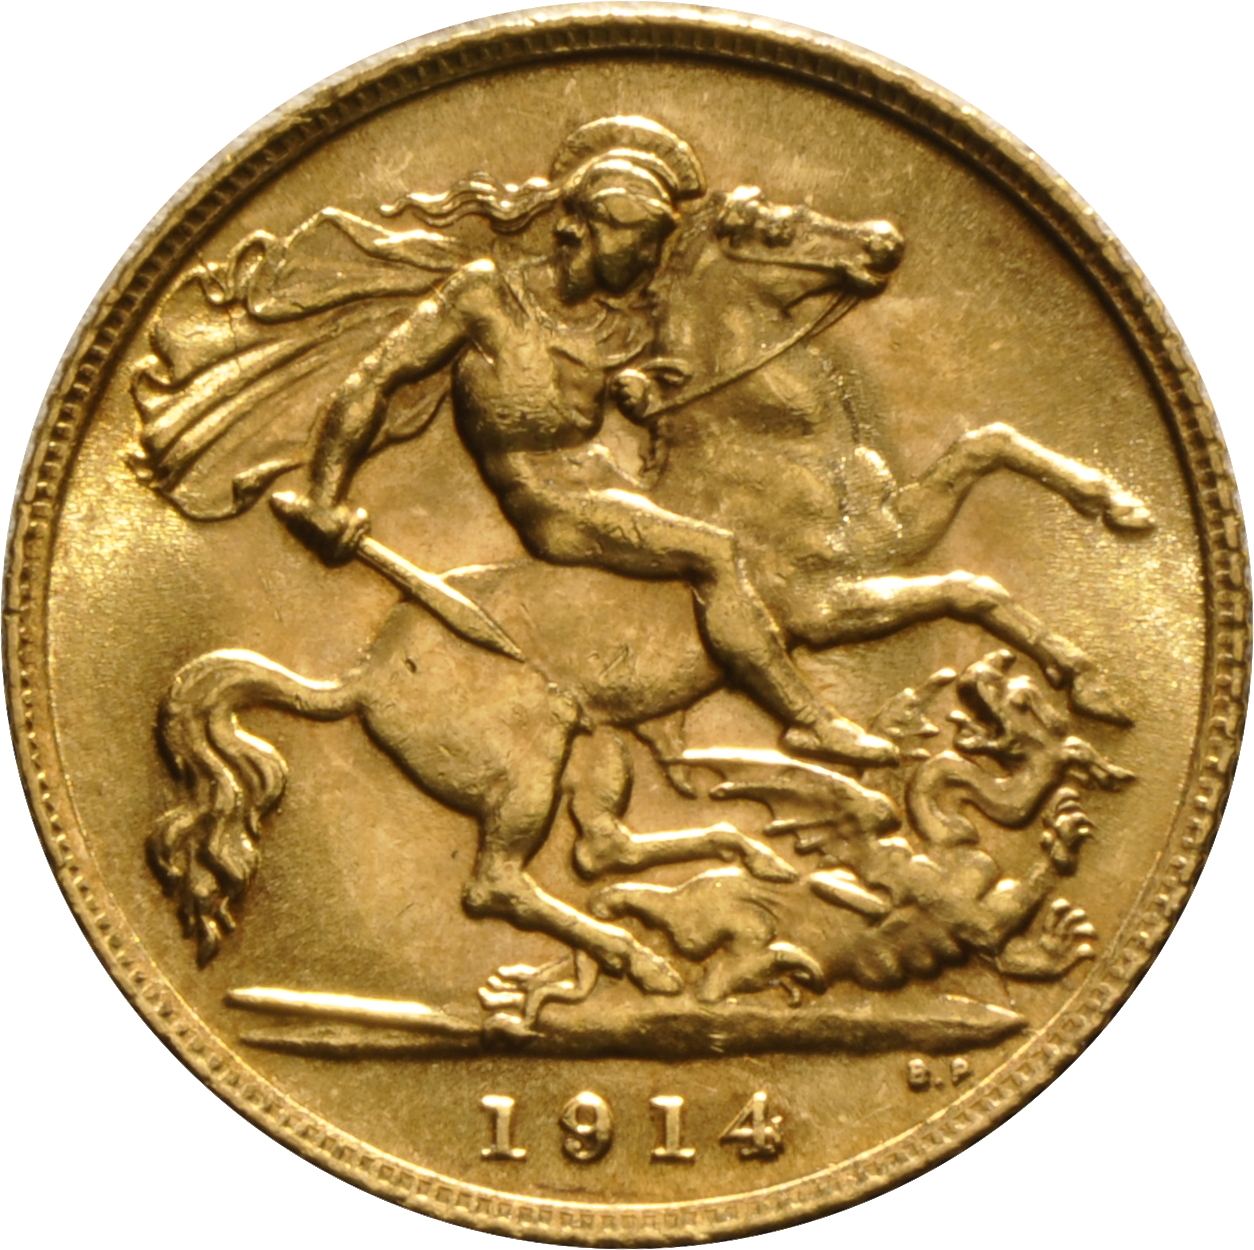 1914 Gold Half Sovereign King George V London 163 170